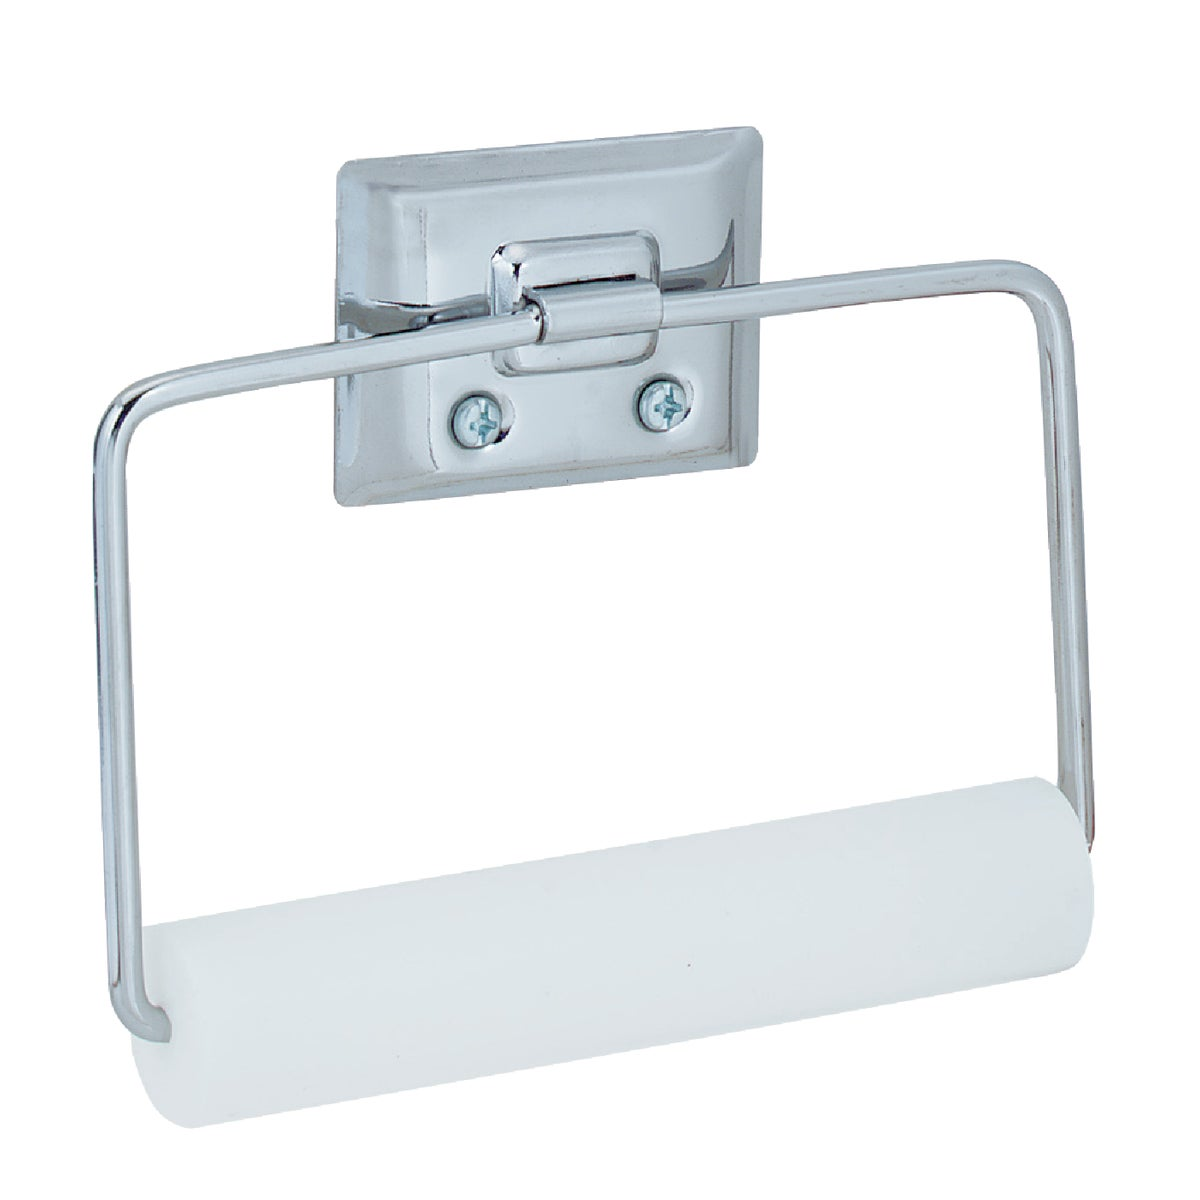 CHROME PAPER HOLDER